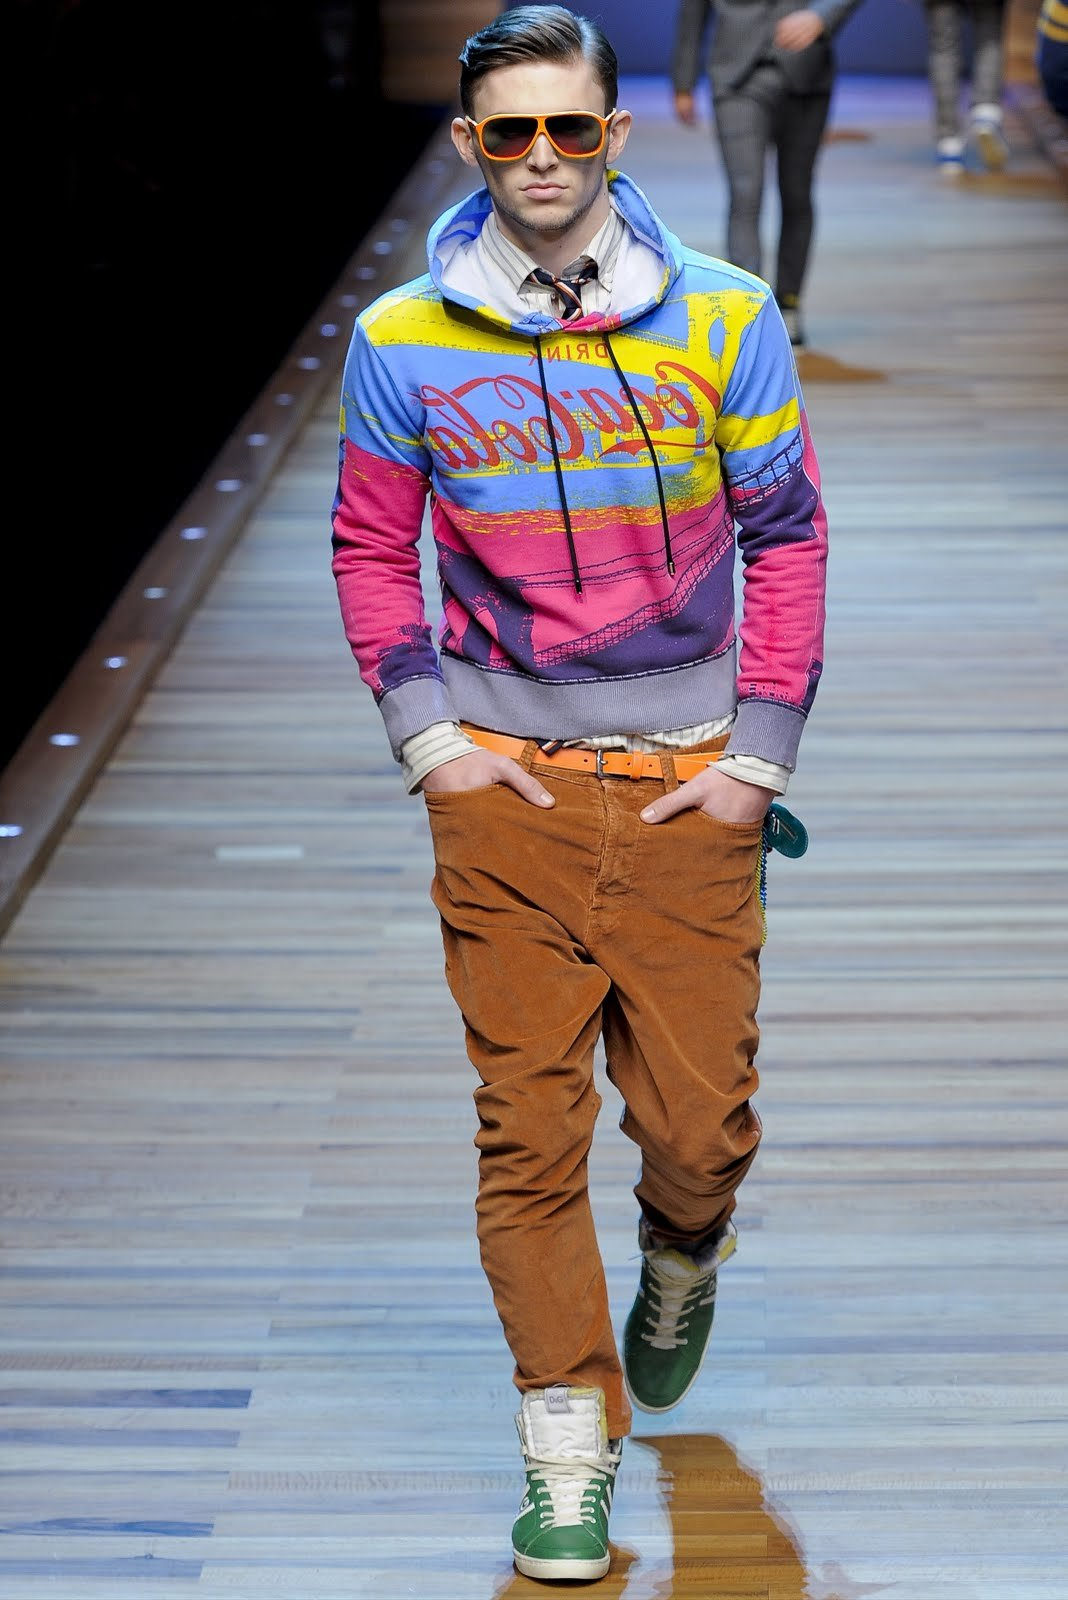 80s Mens Hip Hop Fashion Hiphop was another popular fashion trend in the 80s Inspired and influenced by music stars and rappers such as the members of RunD